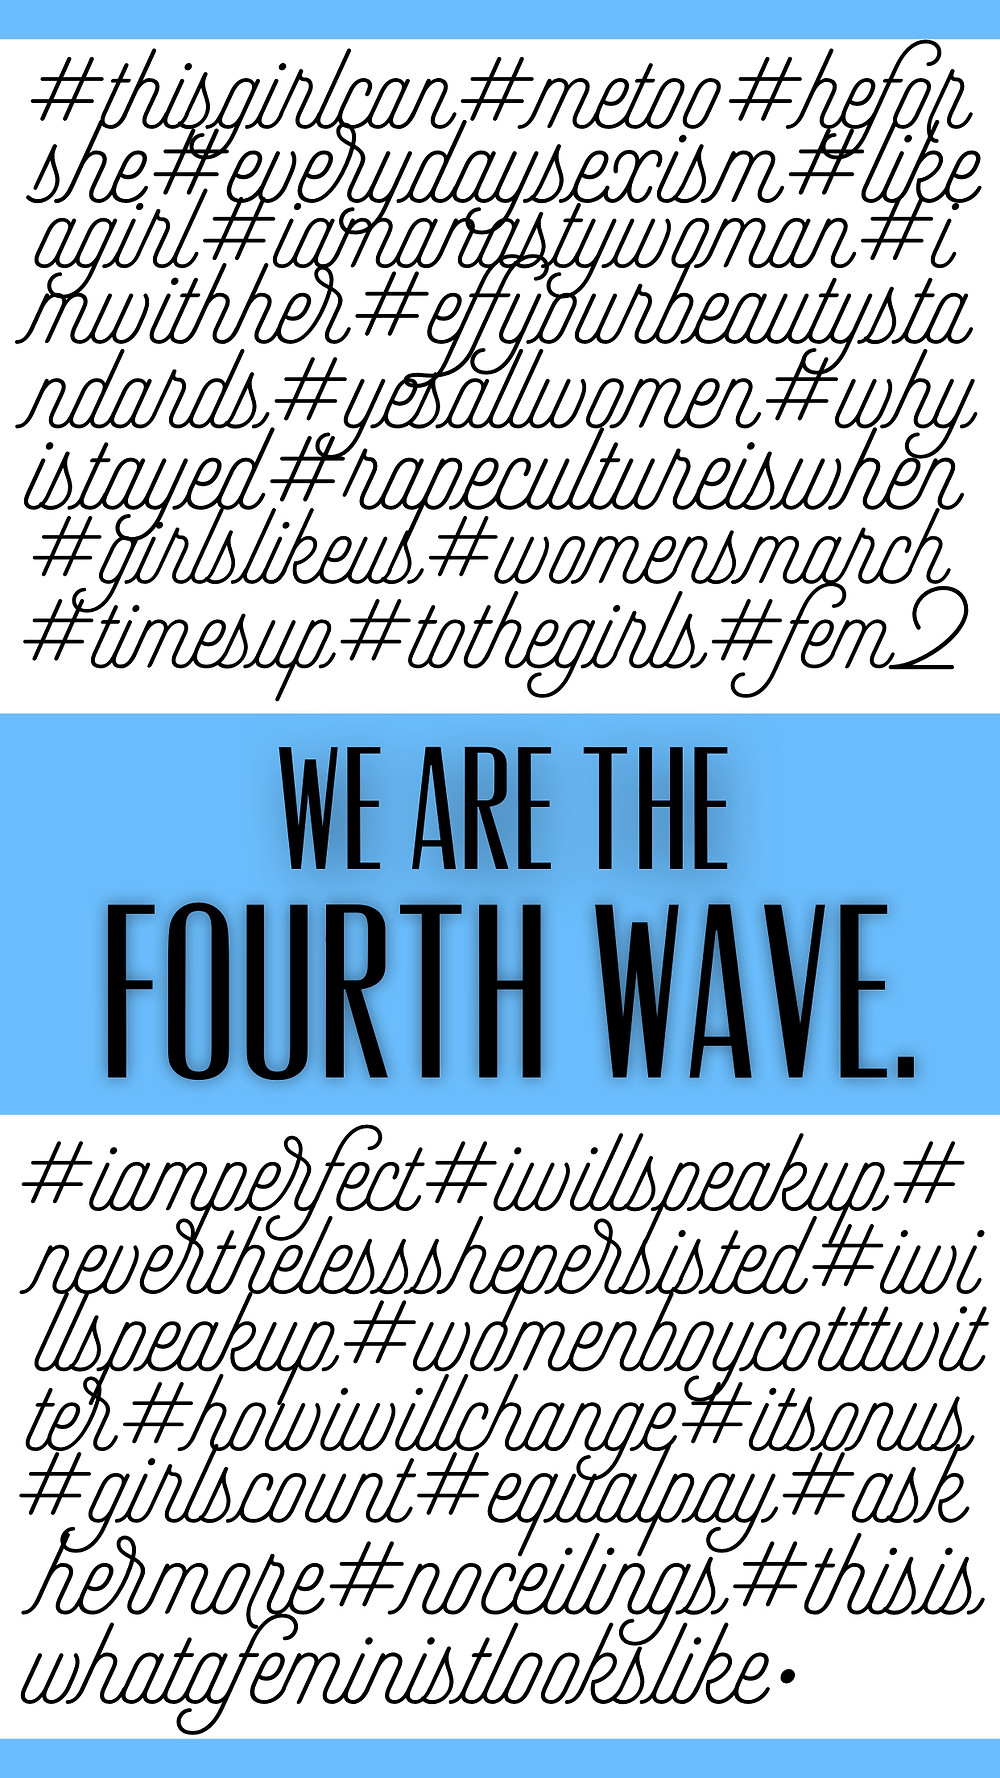 We are the fourth wave quote by horrendously feminist blog hashtags showing the feminist activism of our generation, digital activism